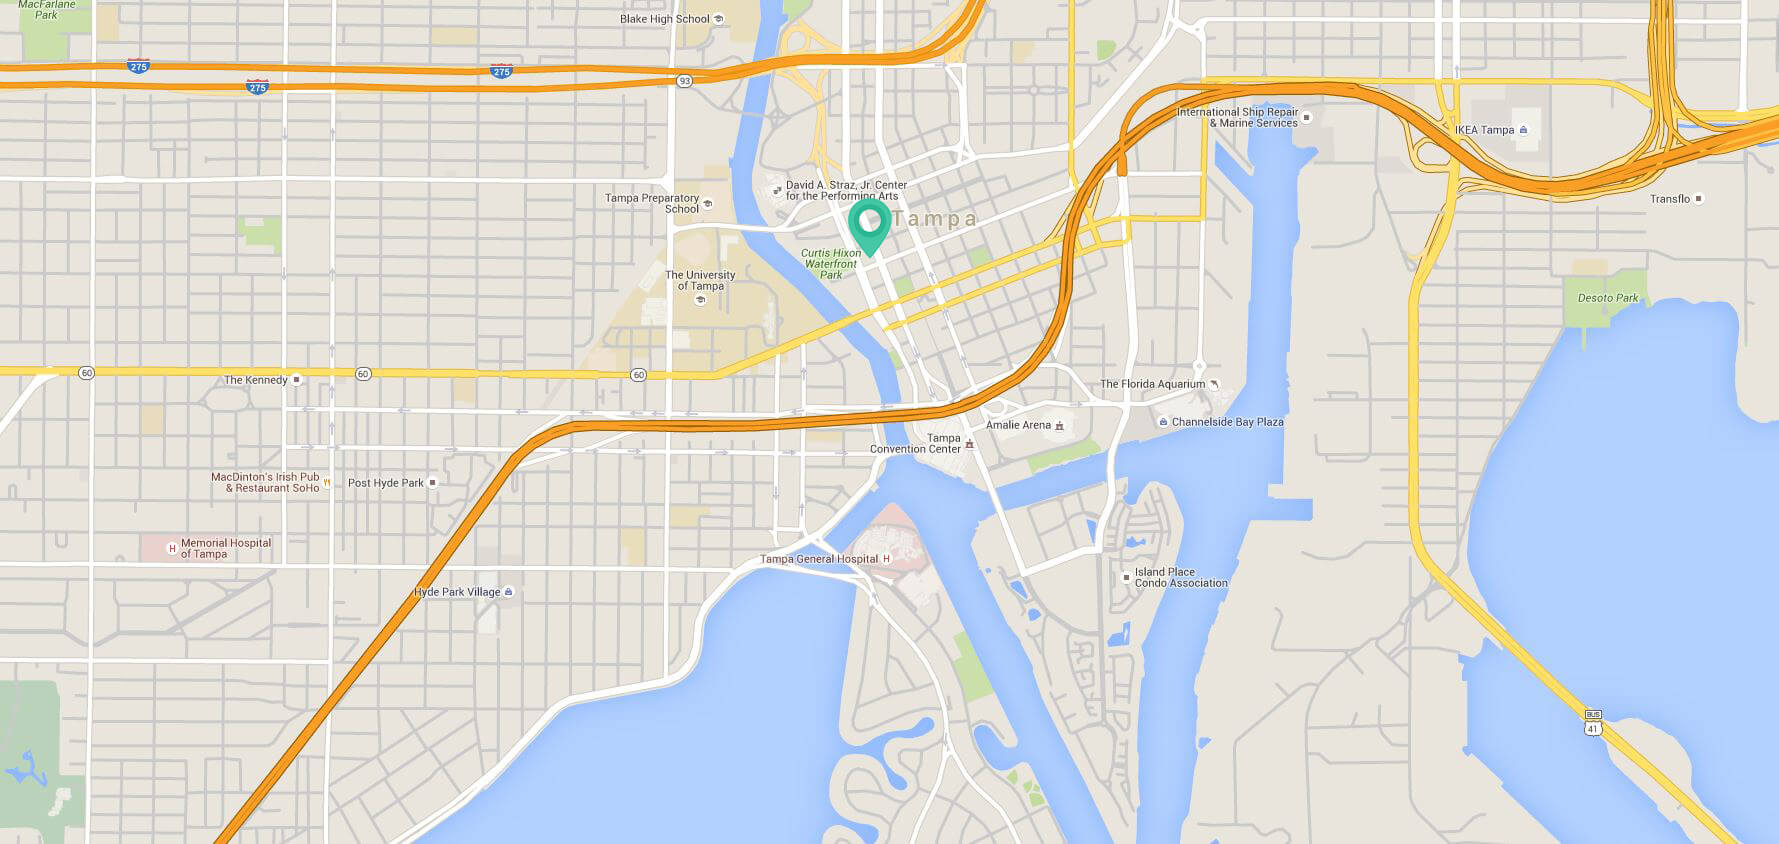 Map of tampa florida image